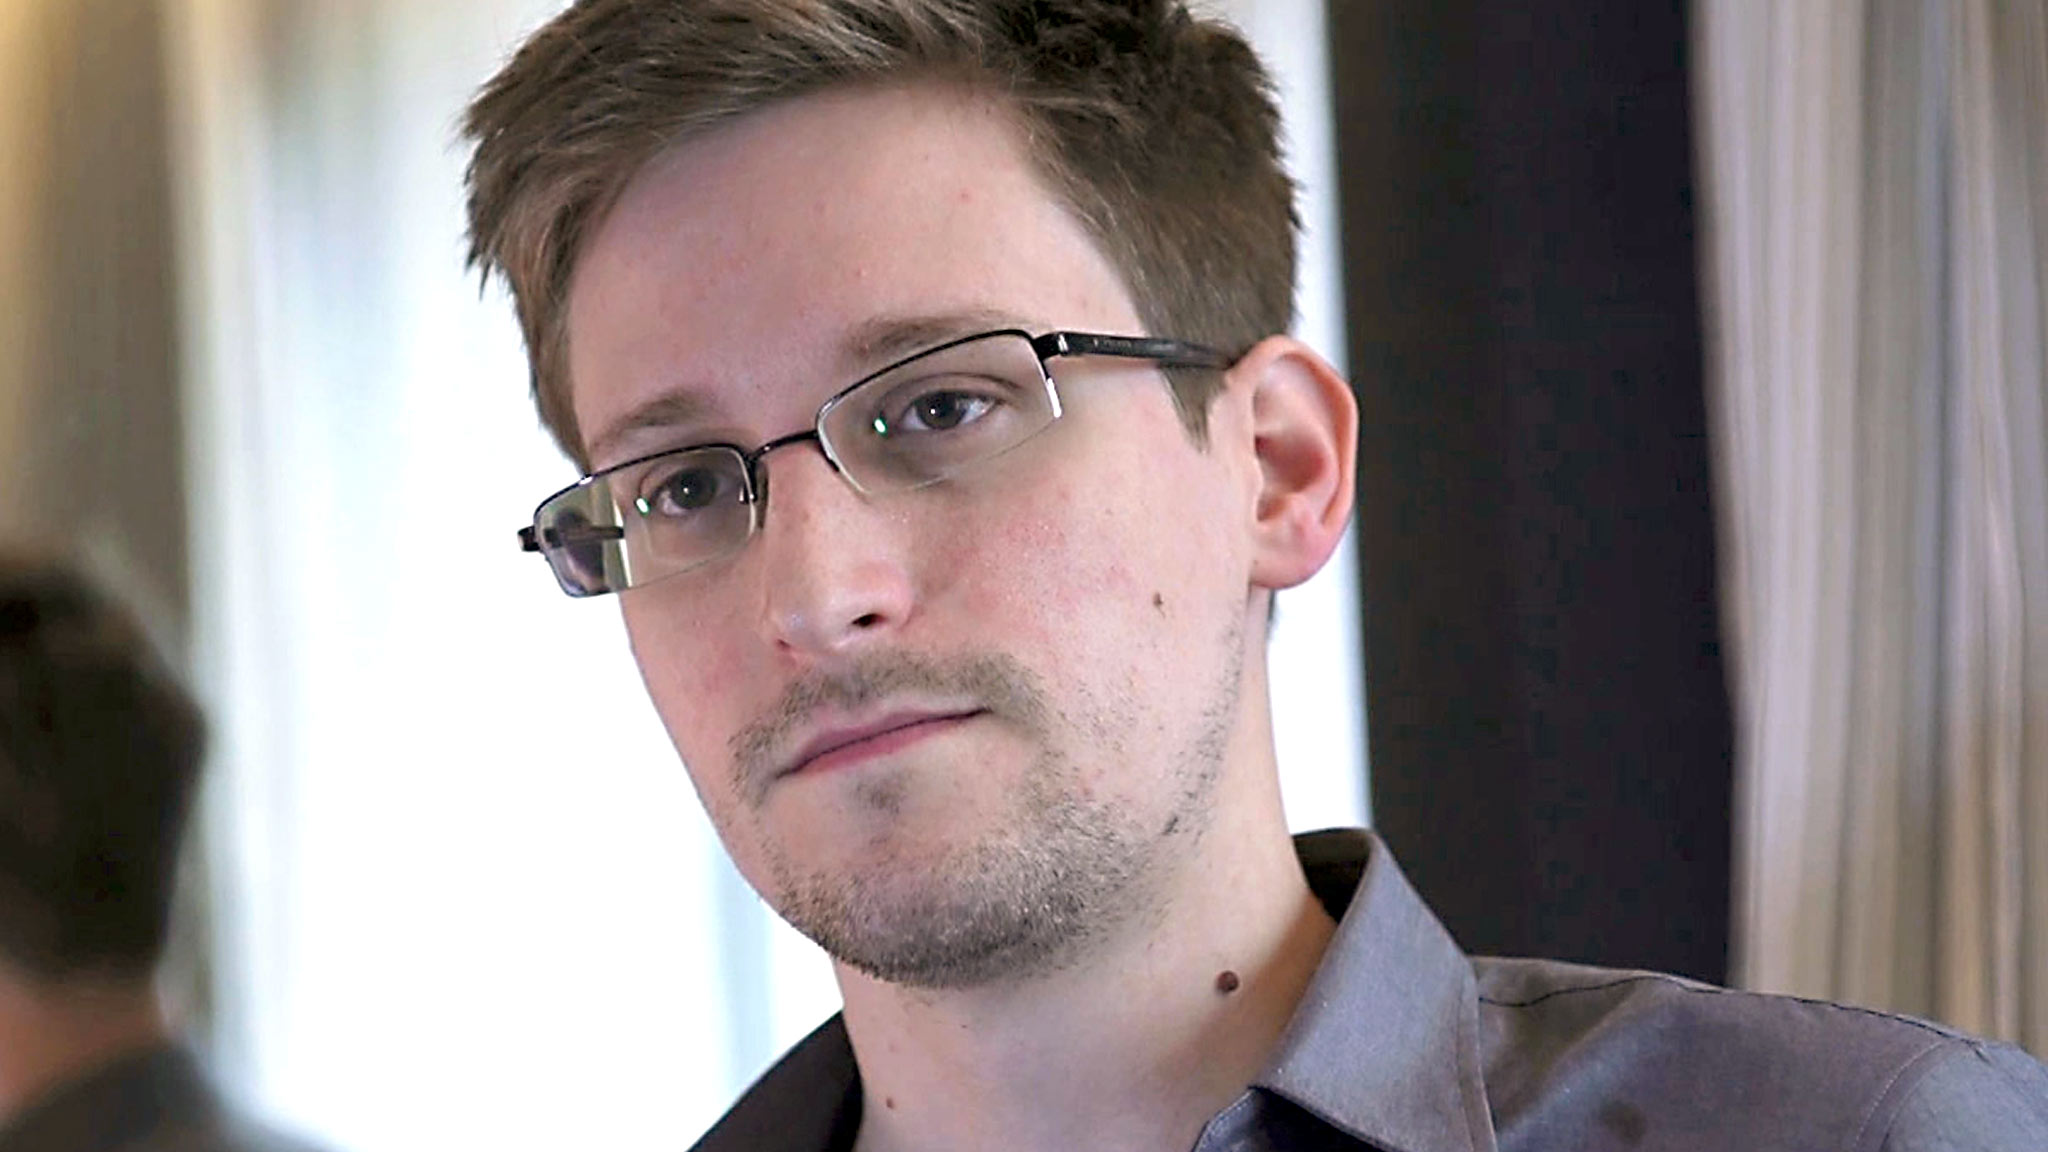 Former U.S. spy agency contractor Edward Snowden